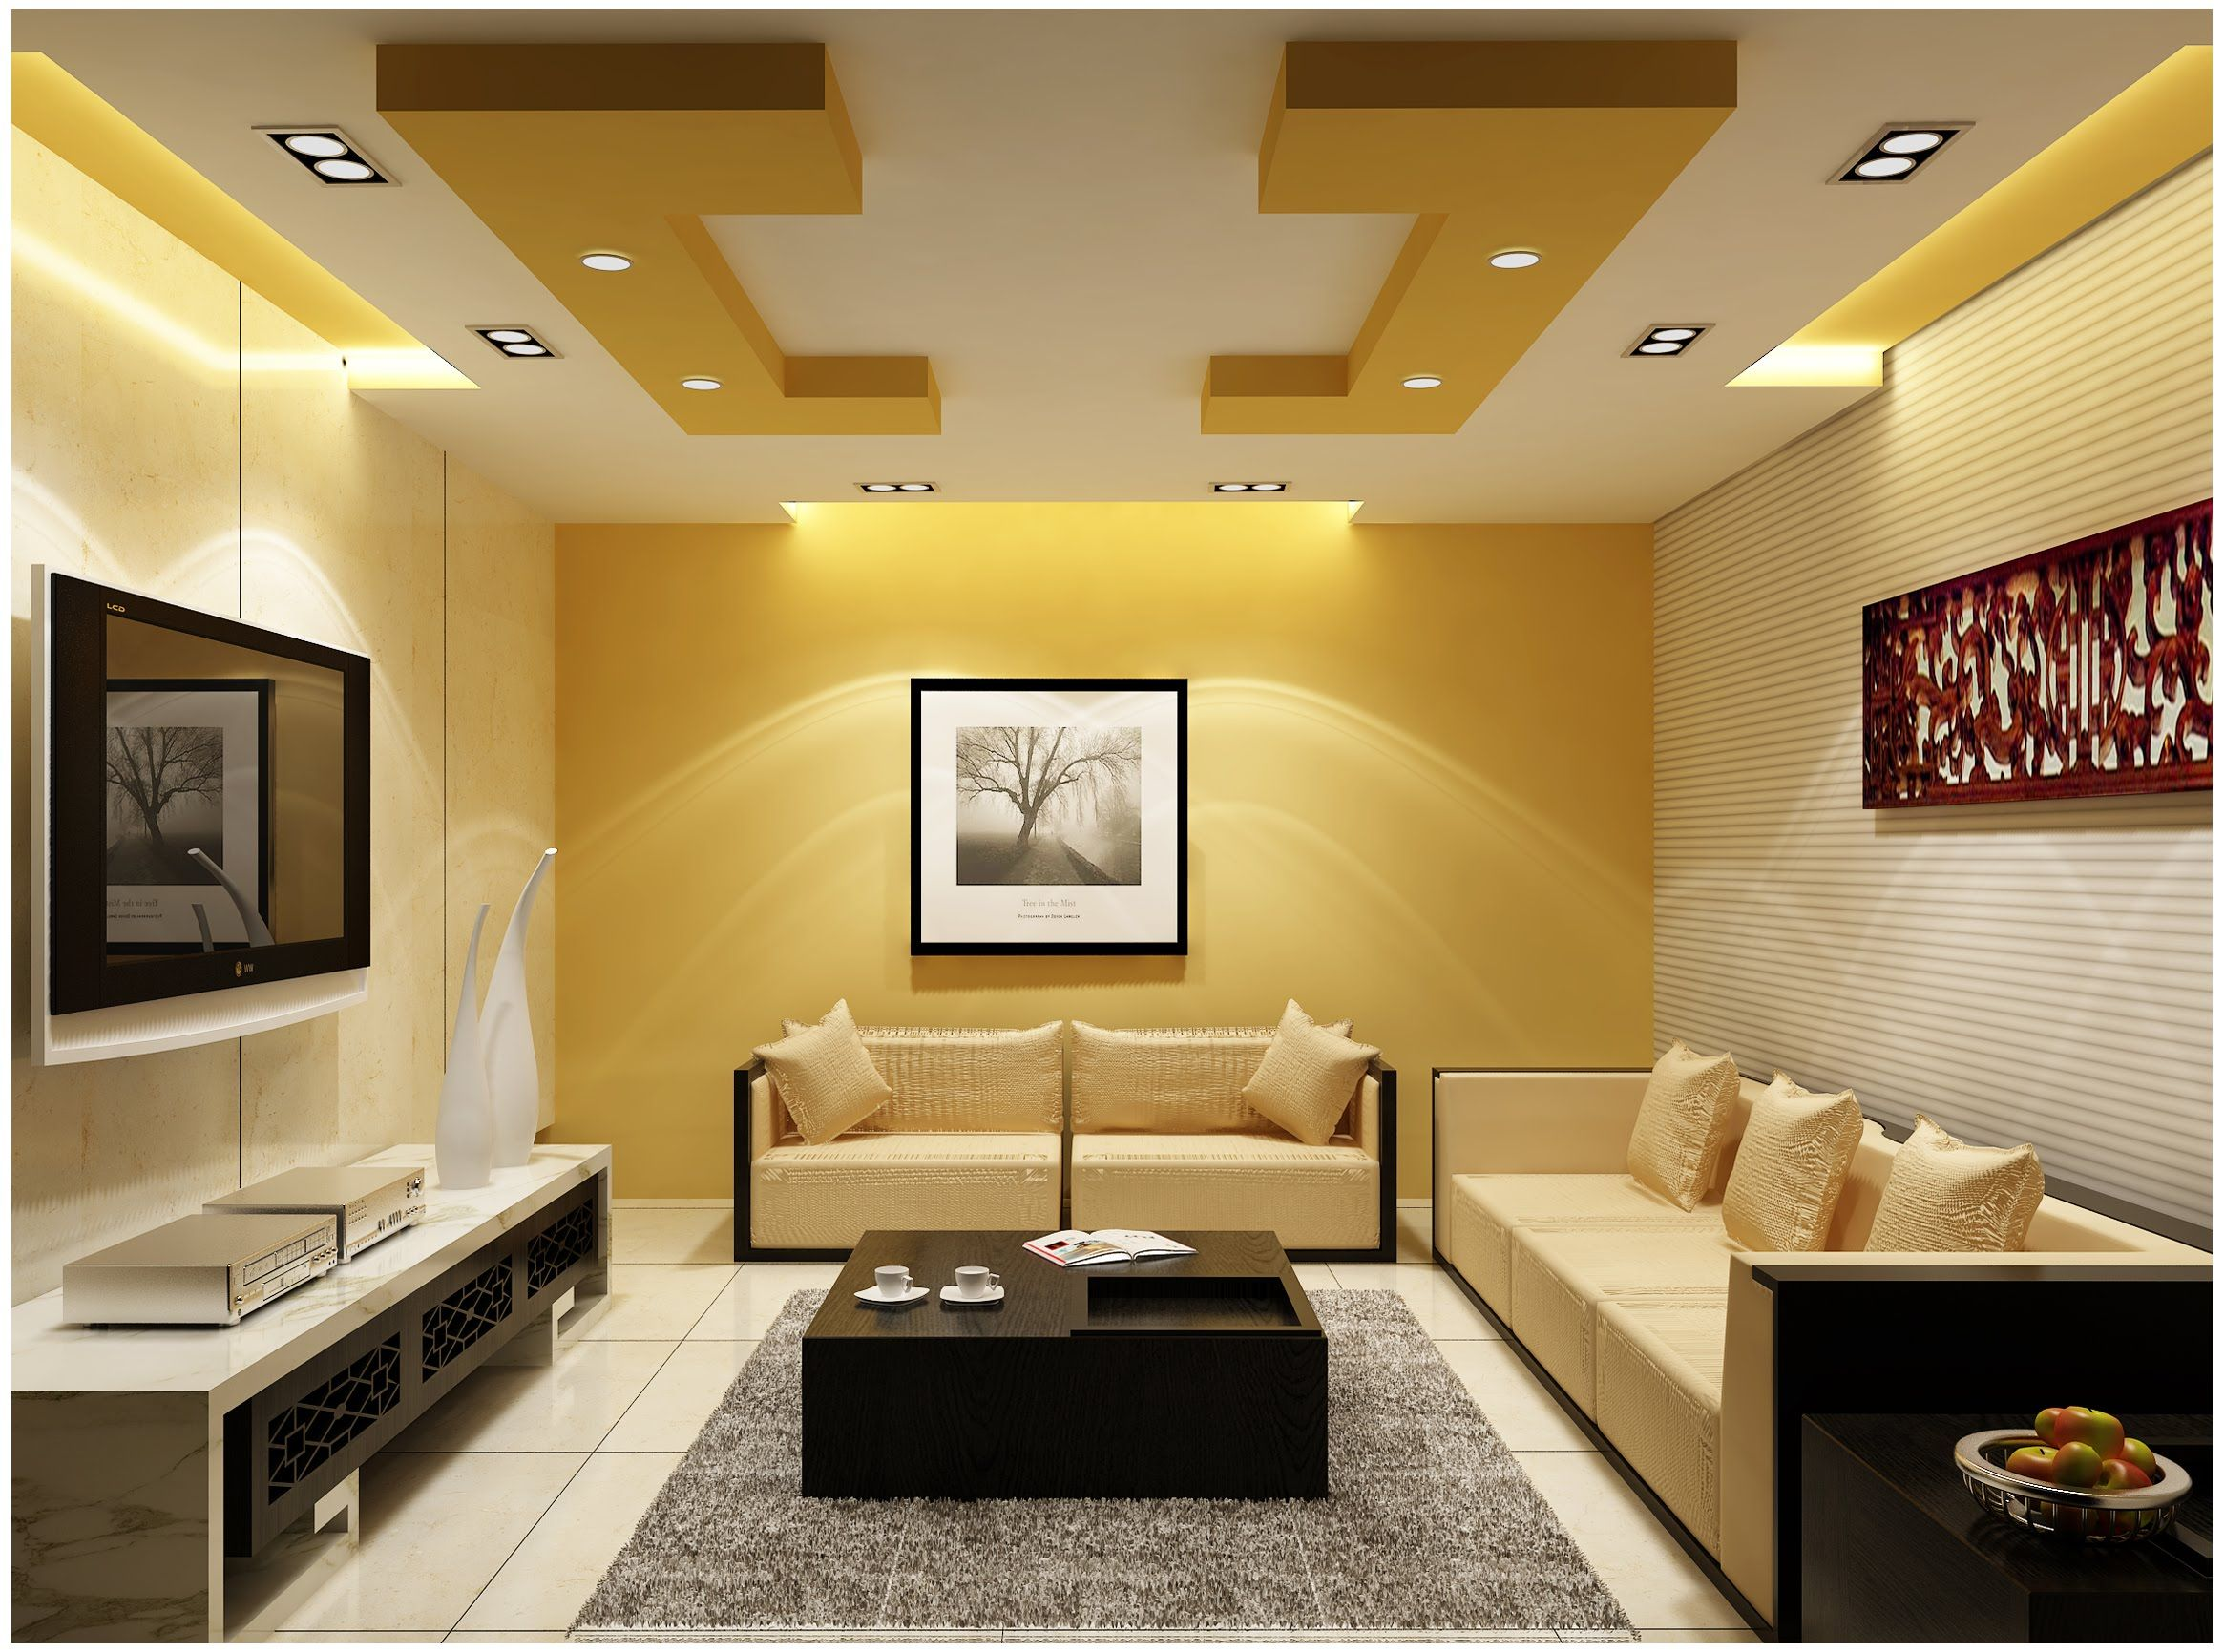 false ceiling designs for 13' x 10, room